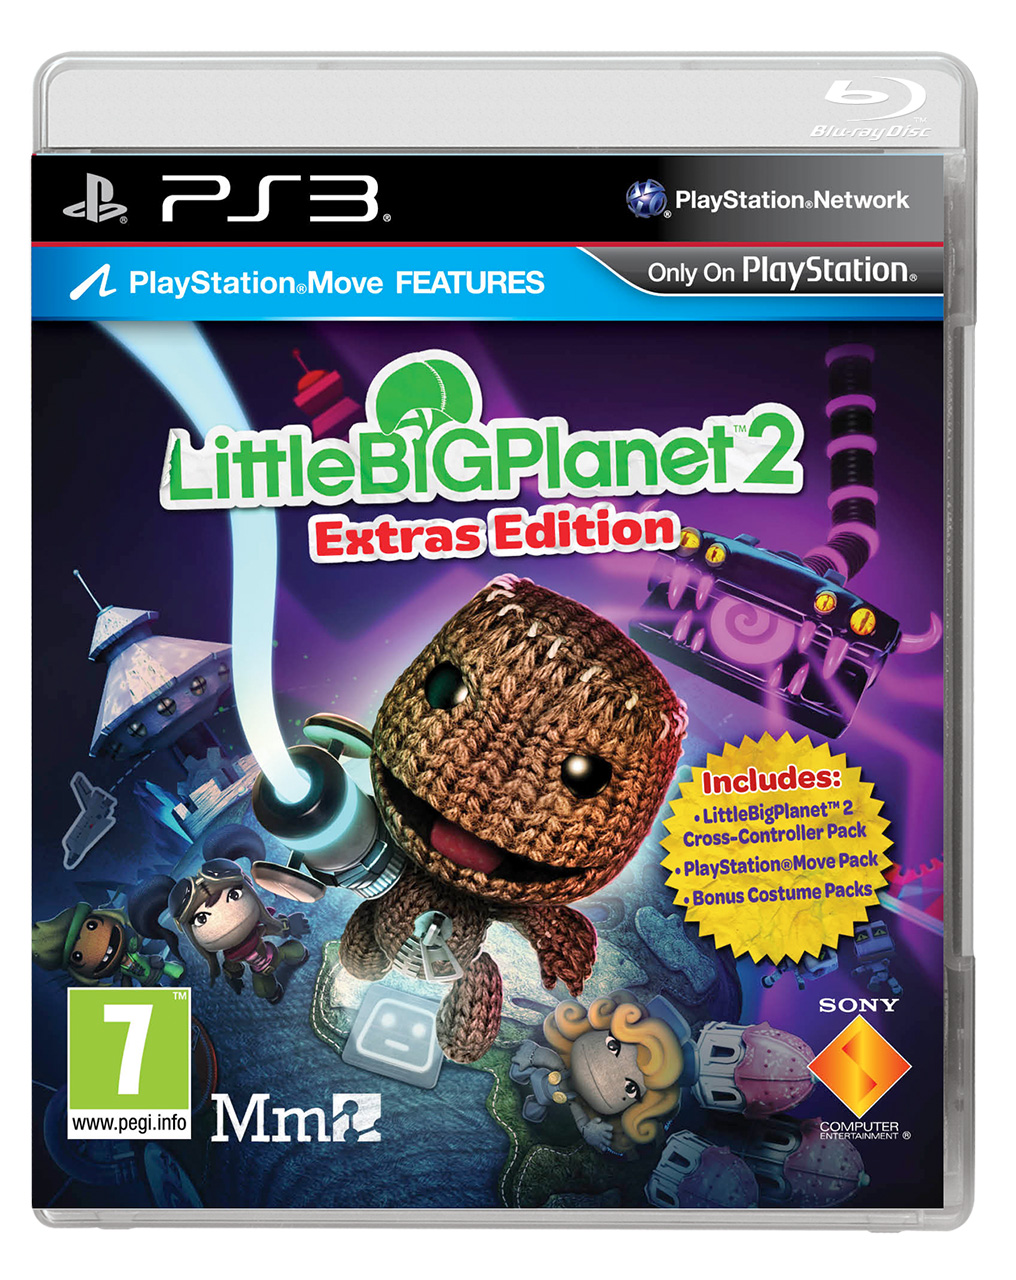 Littlebigplanet-2-extras-edition-box-art_1016